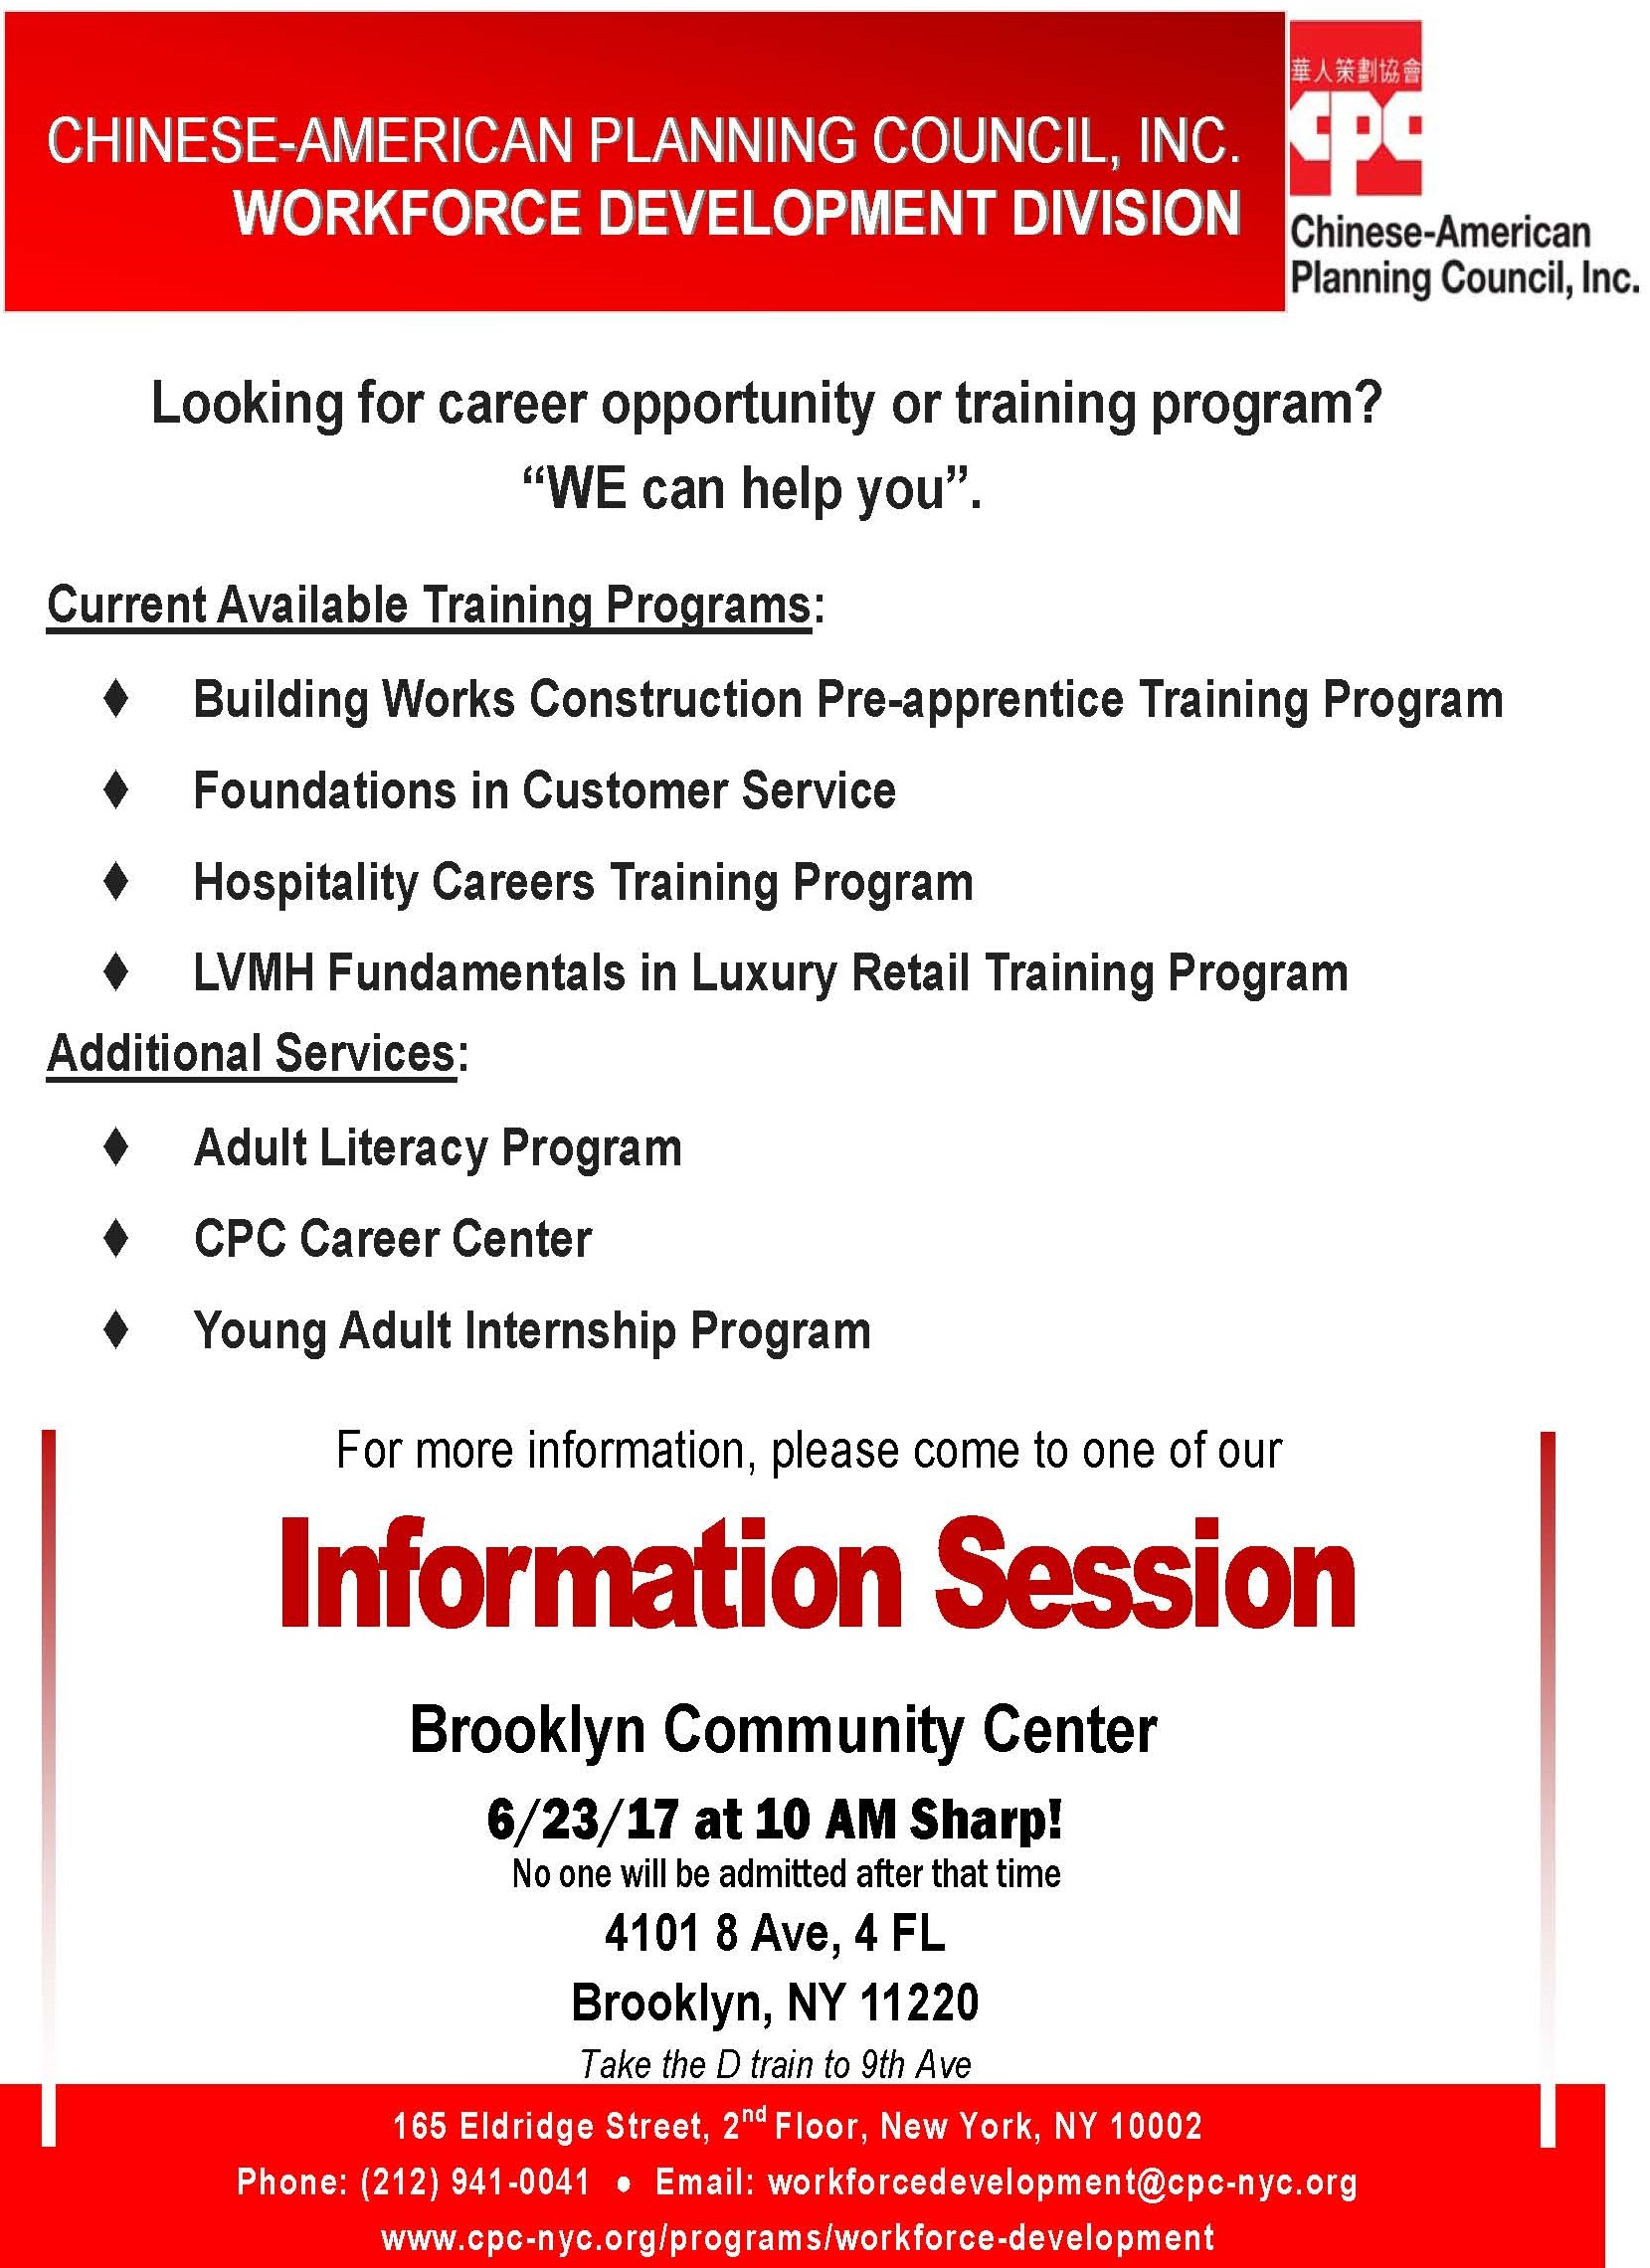 All Services Information Session in Brooklyn